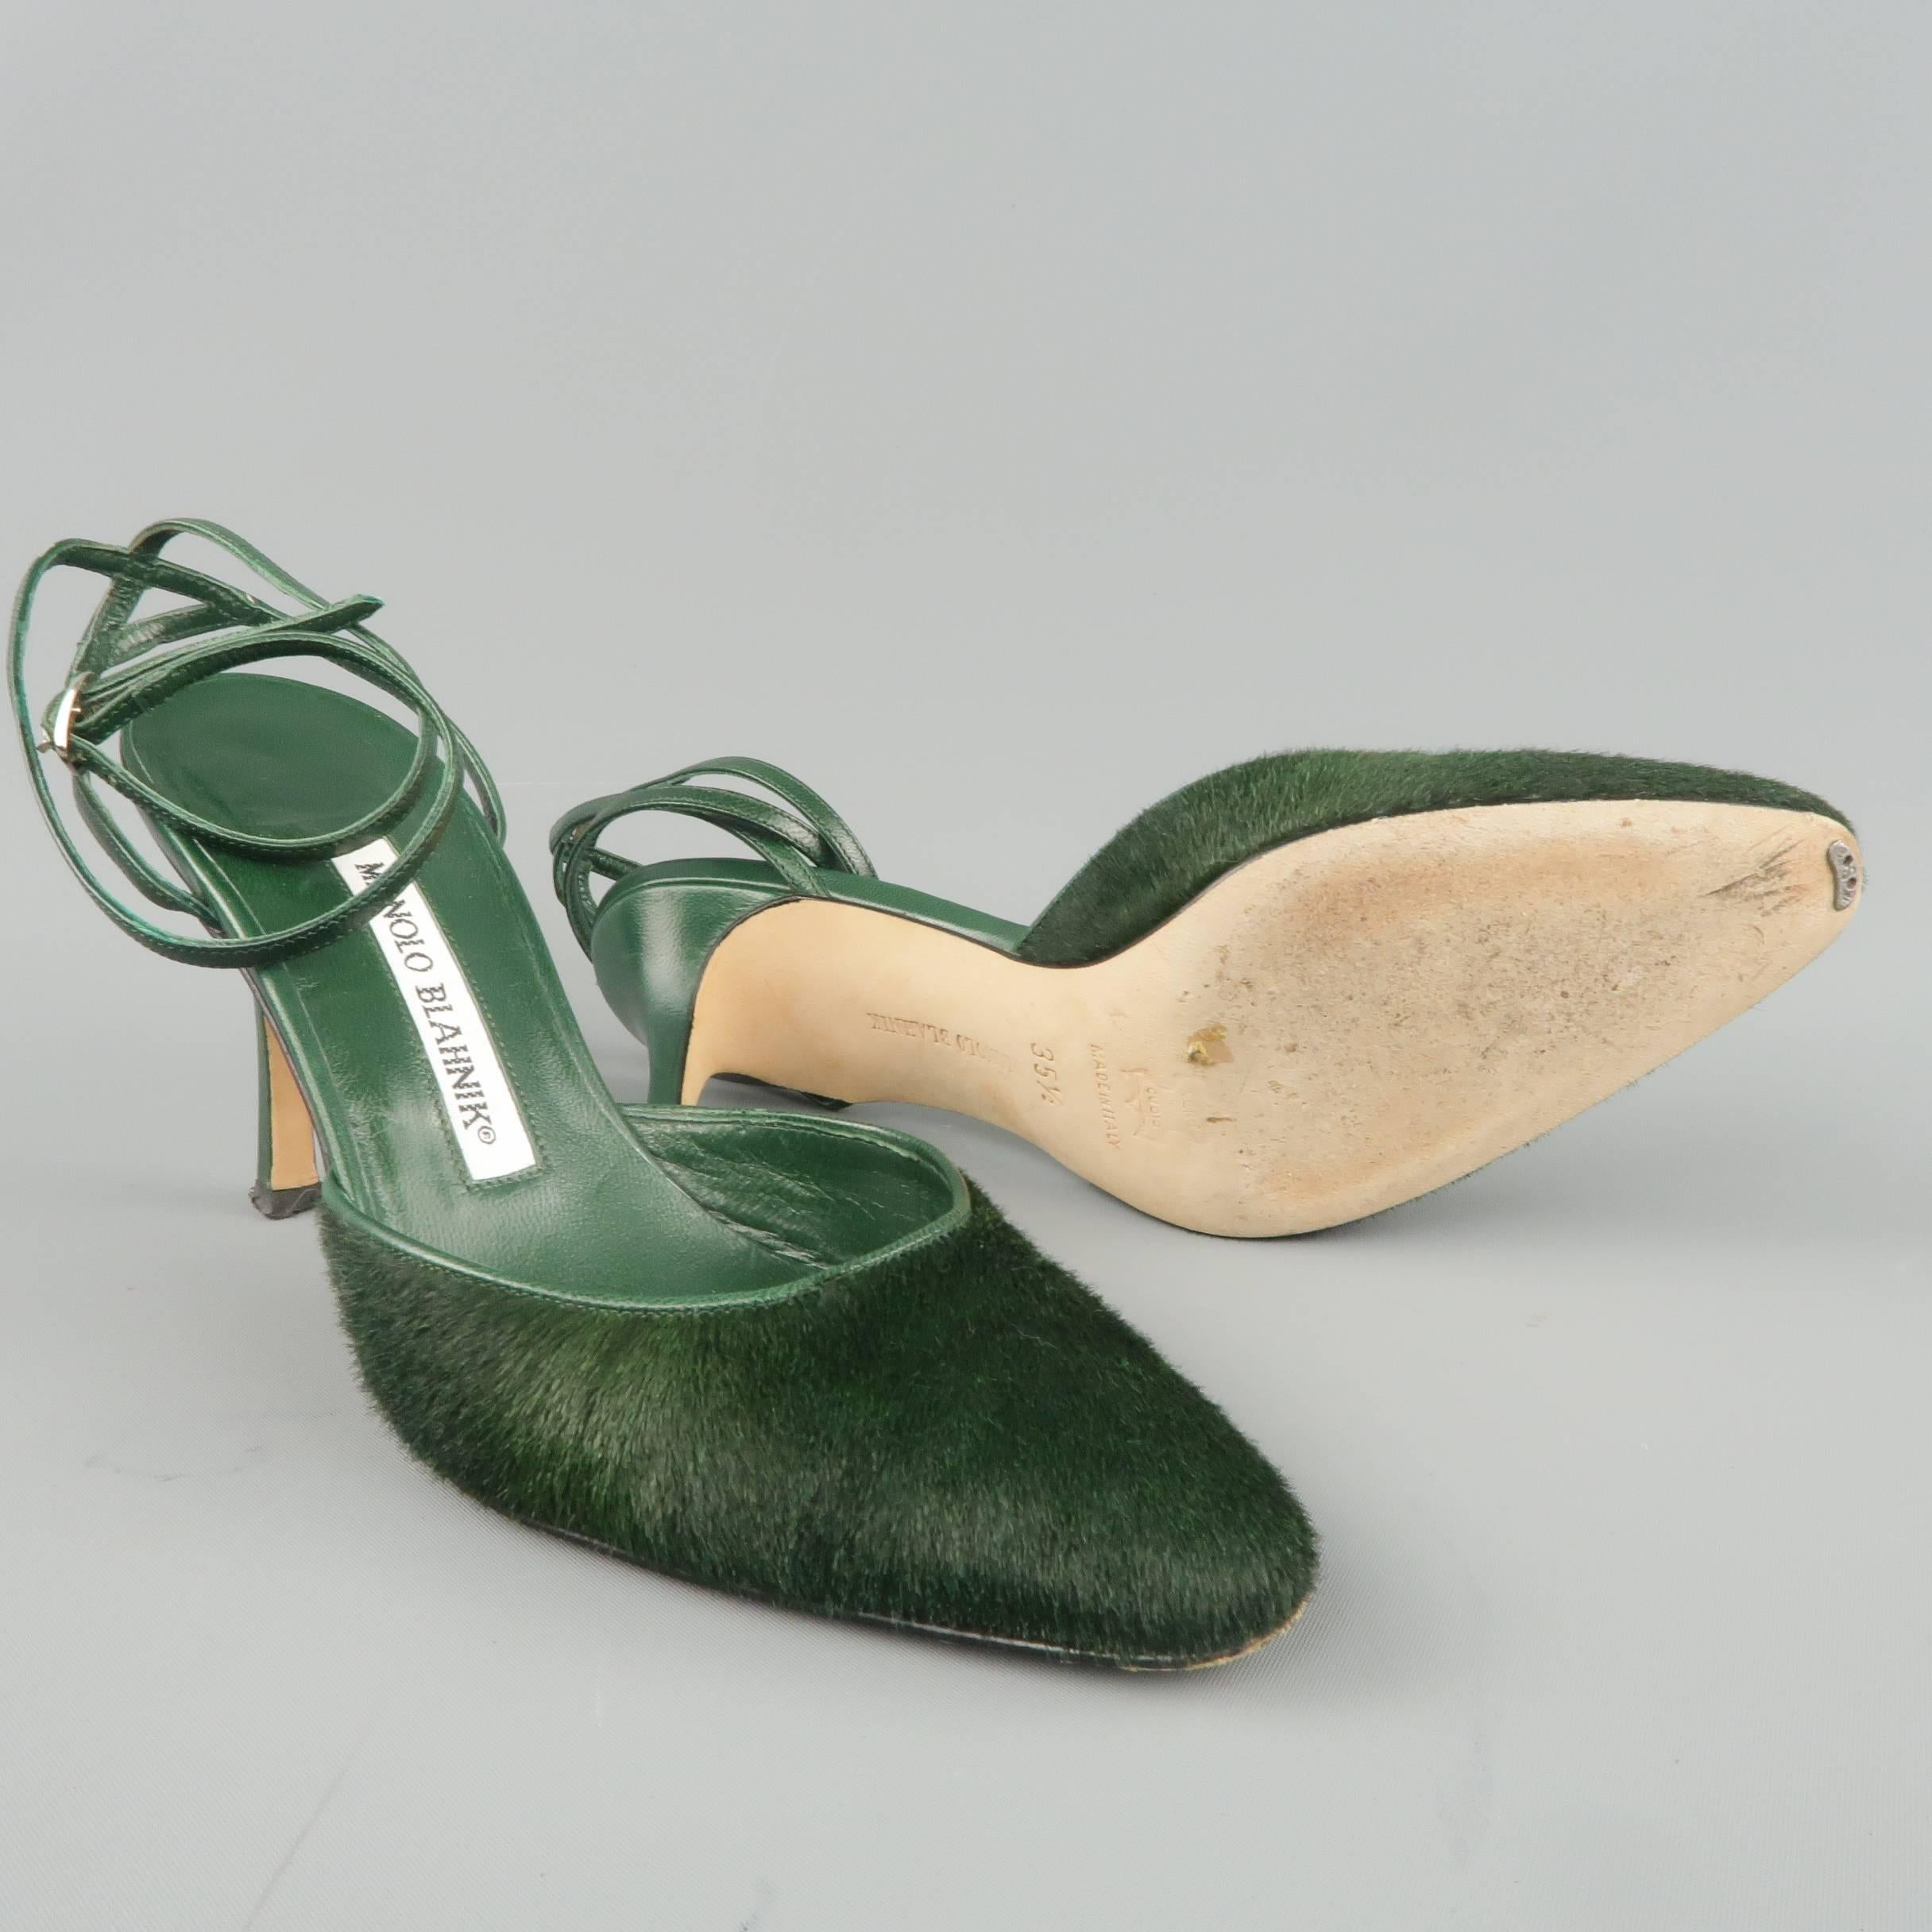 0ef9ce7c867e2 ... womens mules green c2535 canada manolo blahnik pumps heels size 5.5  green ponyhair leather ankle strap for sale 2 b79ea ...